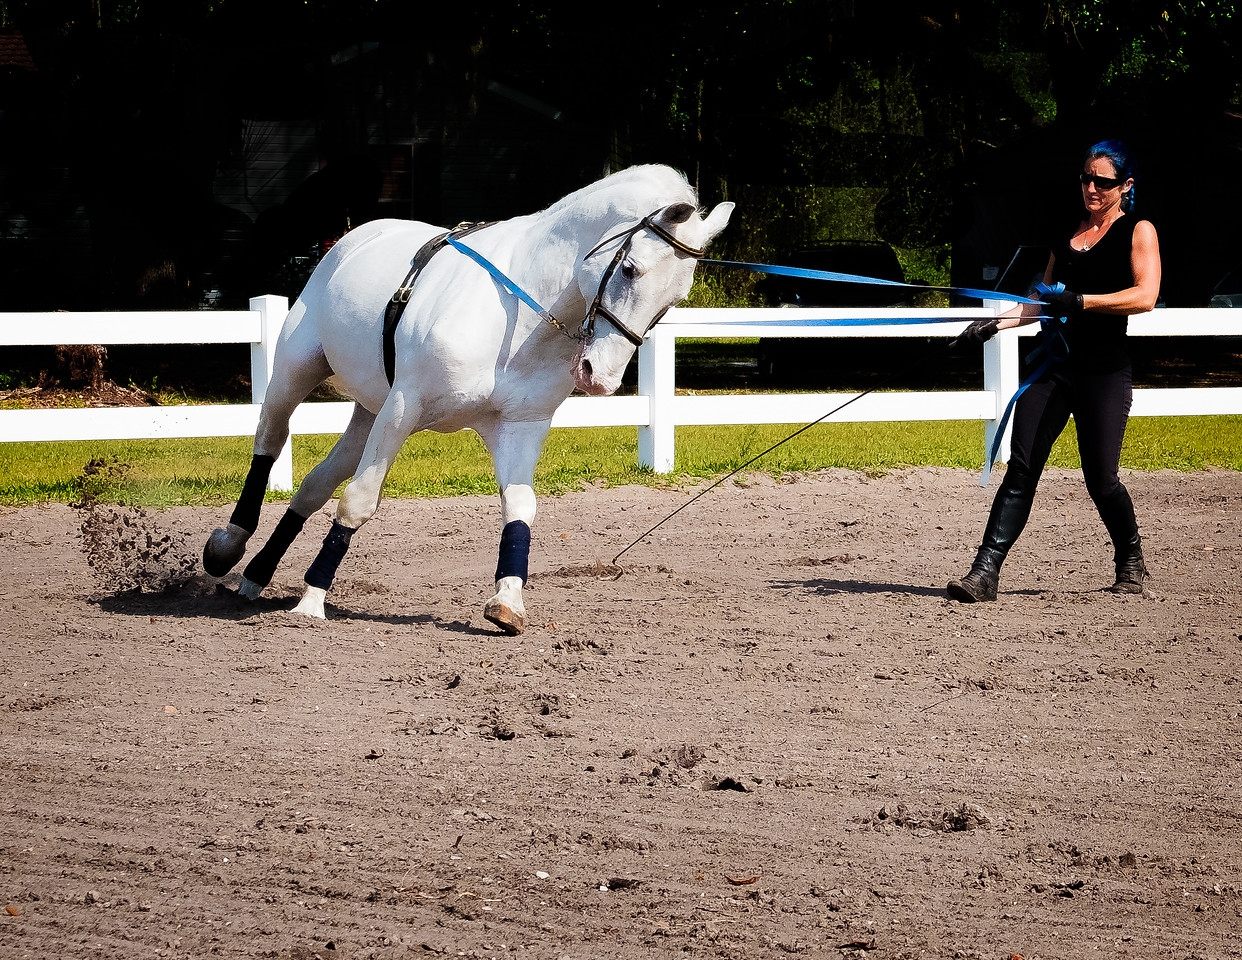 STRAINING MUSCULATURE (STALLION & TRAINER)